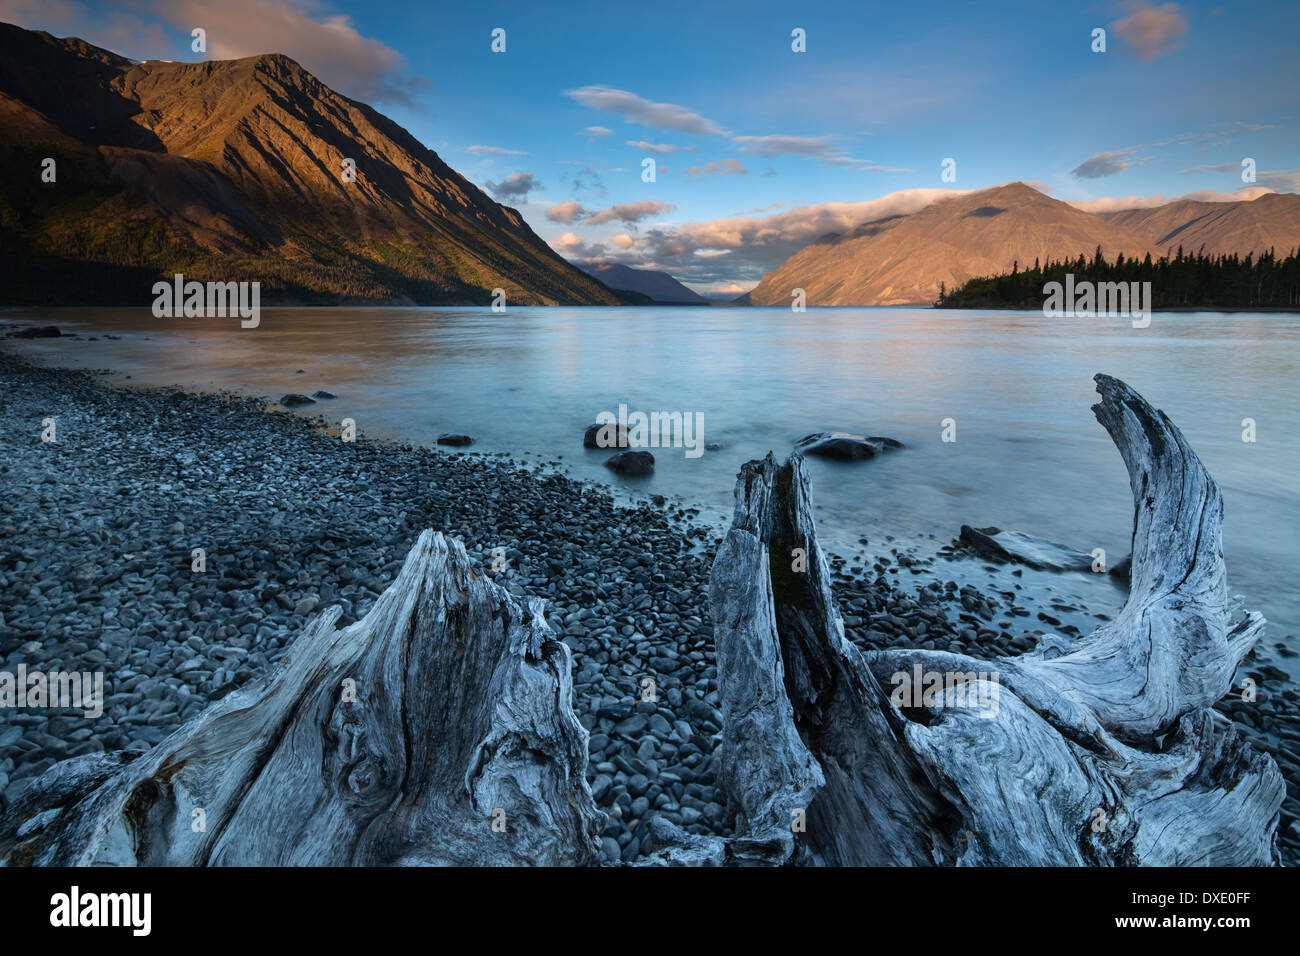 Kathleen Lake at dawn, Kluane National Park, Yukon Territories, Canada - Stock Image